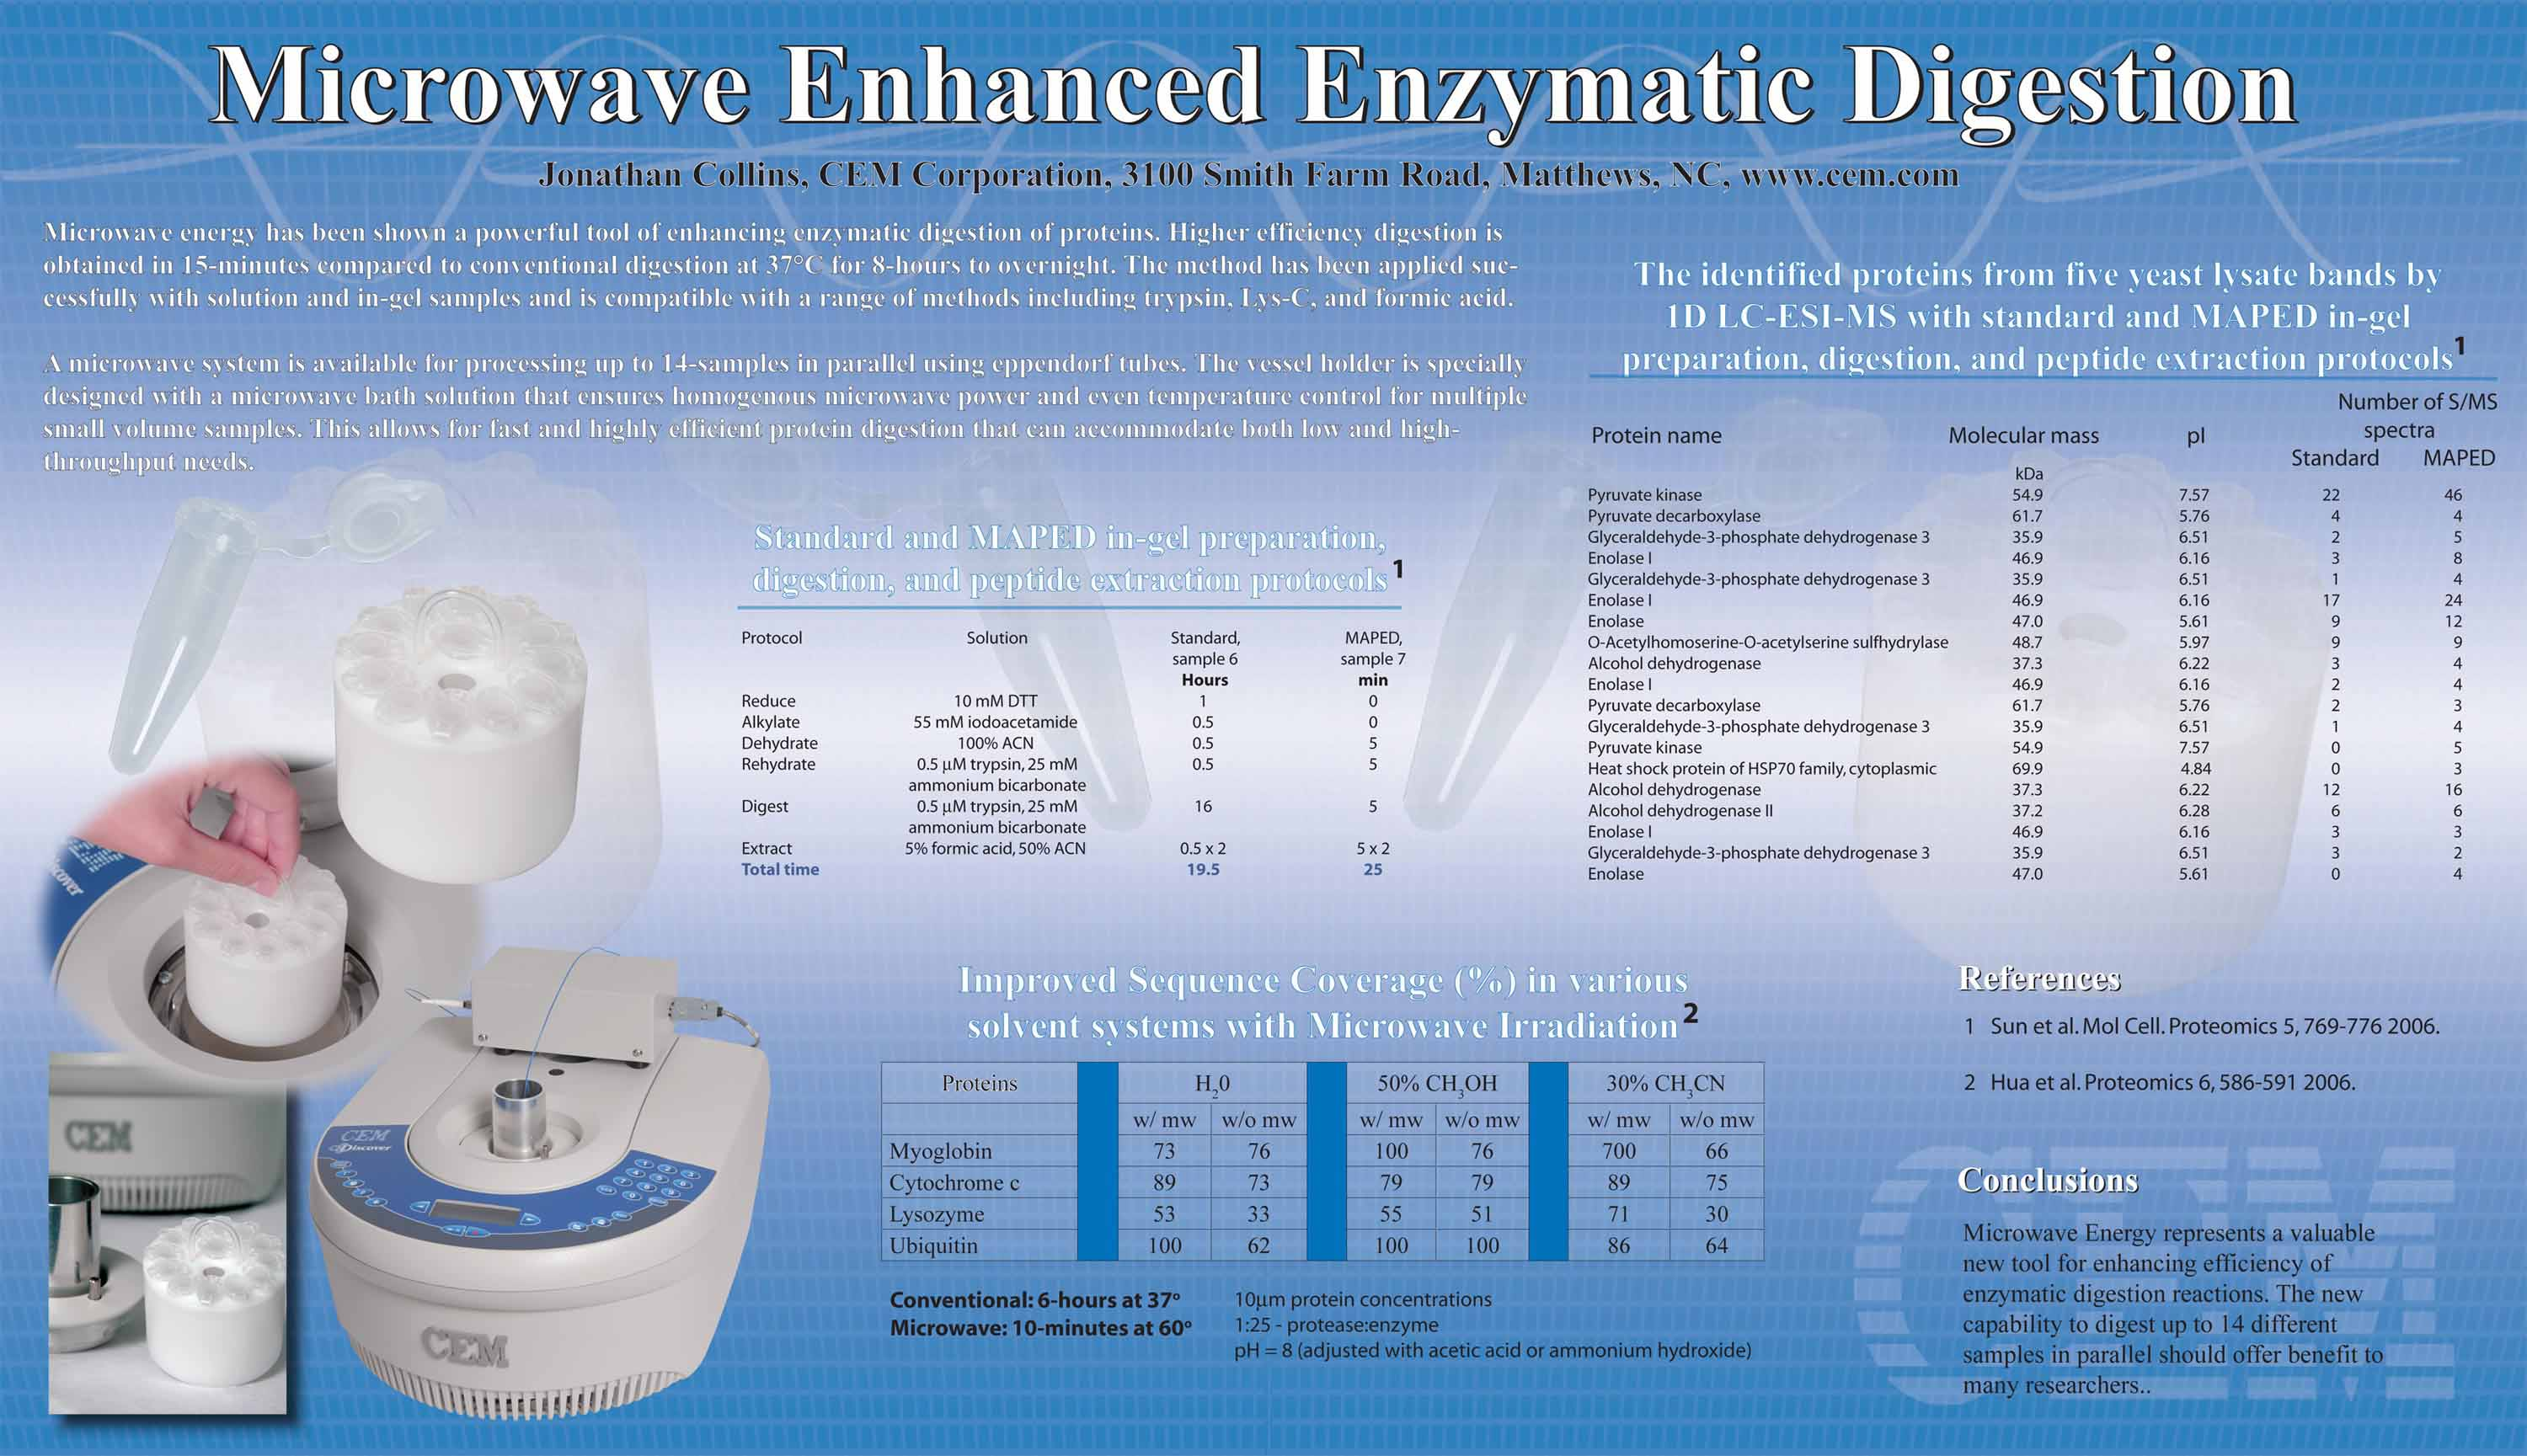 Microwave Enhance Enzymatic Digestion